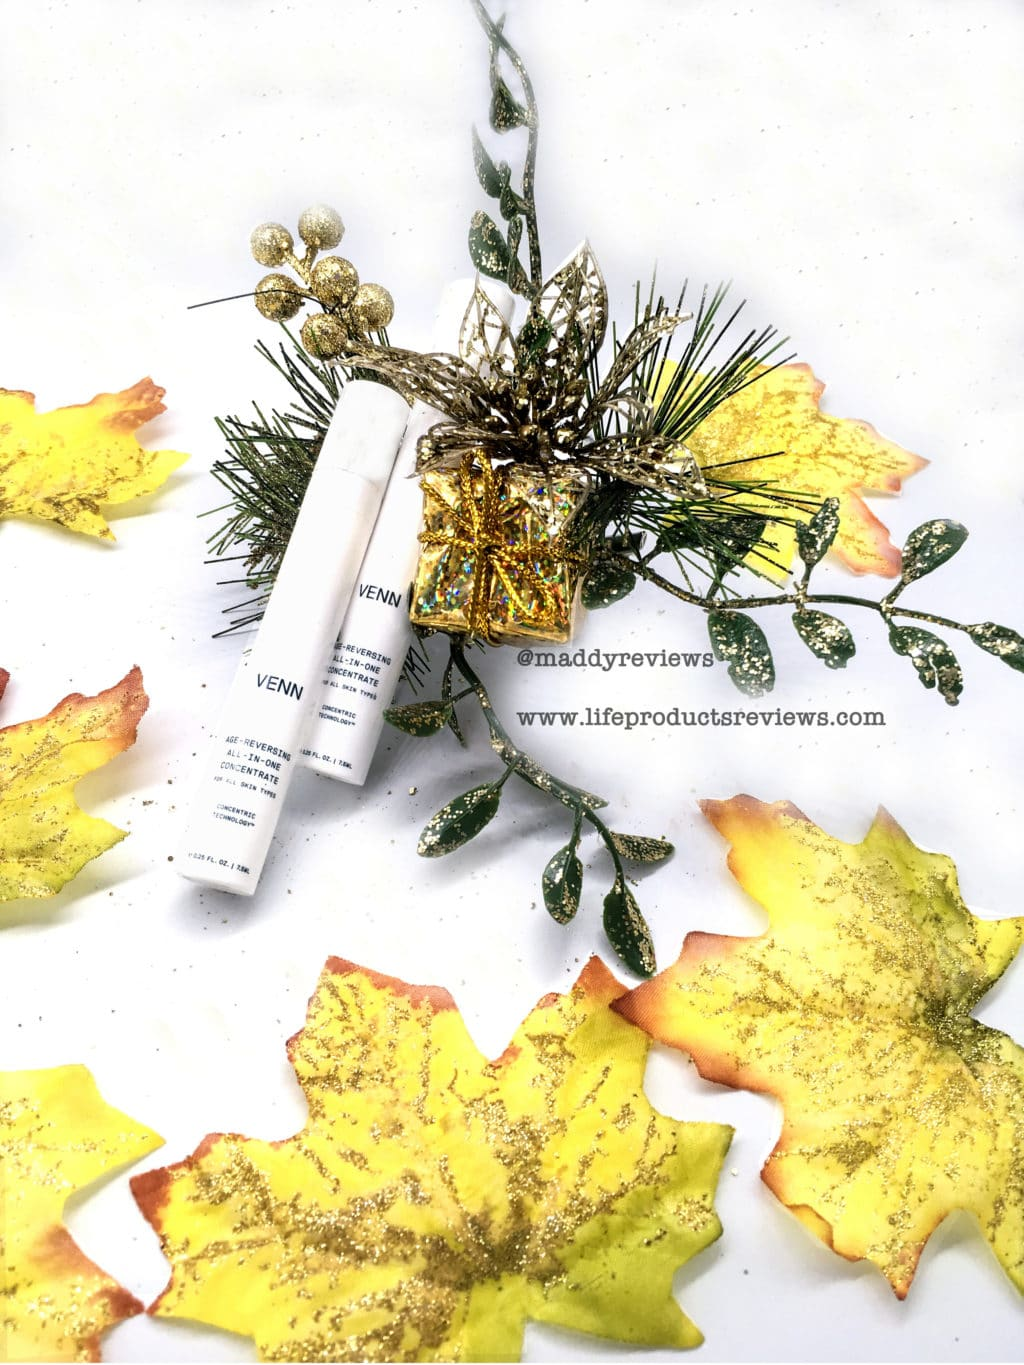 Venn-age-reversing-picture-fix-antiaging-all-in-one-toner-essence-serum-ampoule-lotion-cream